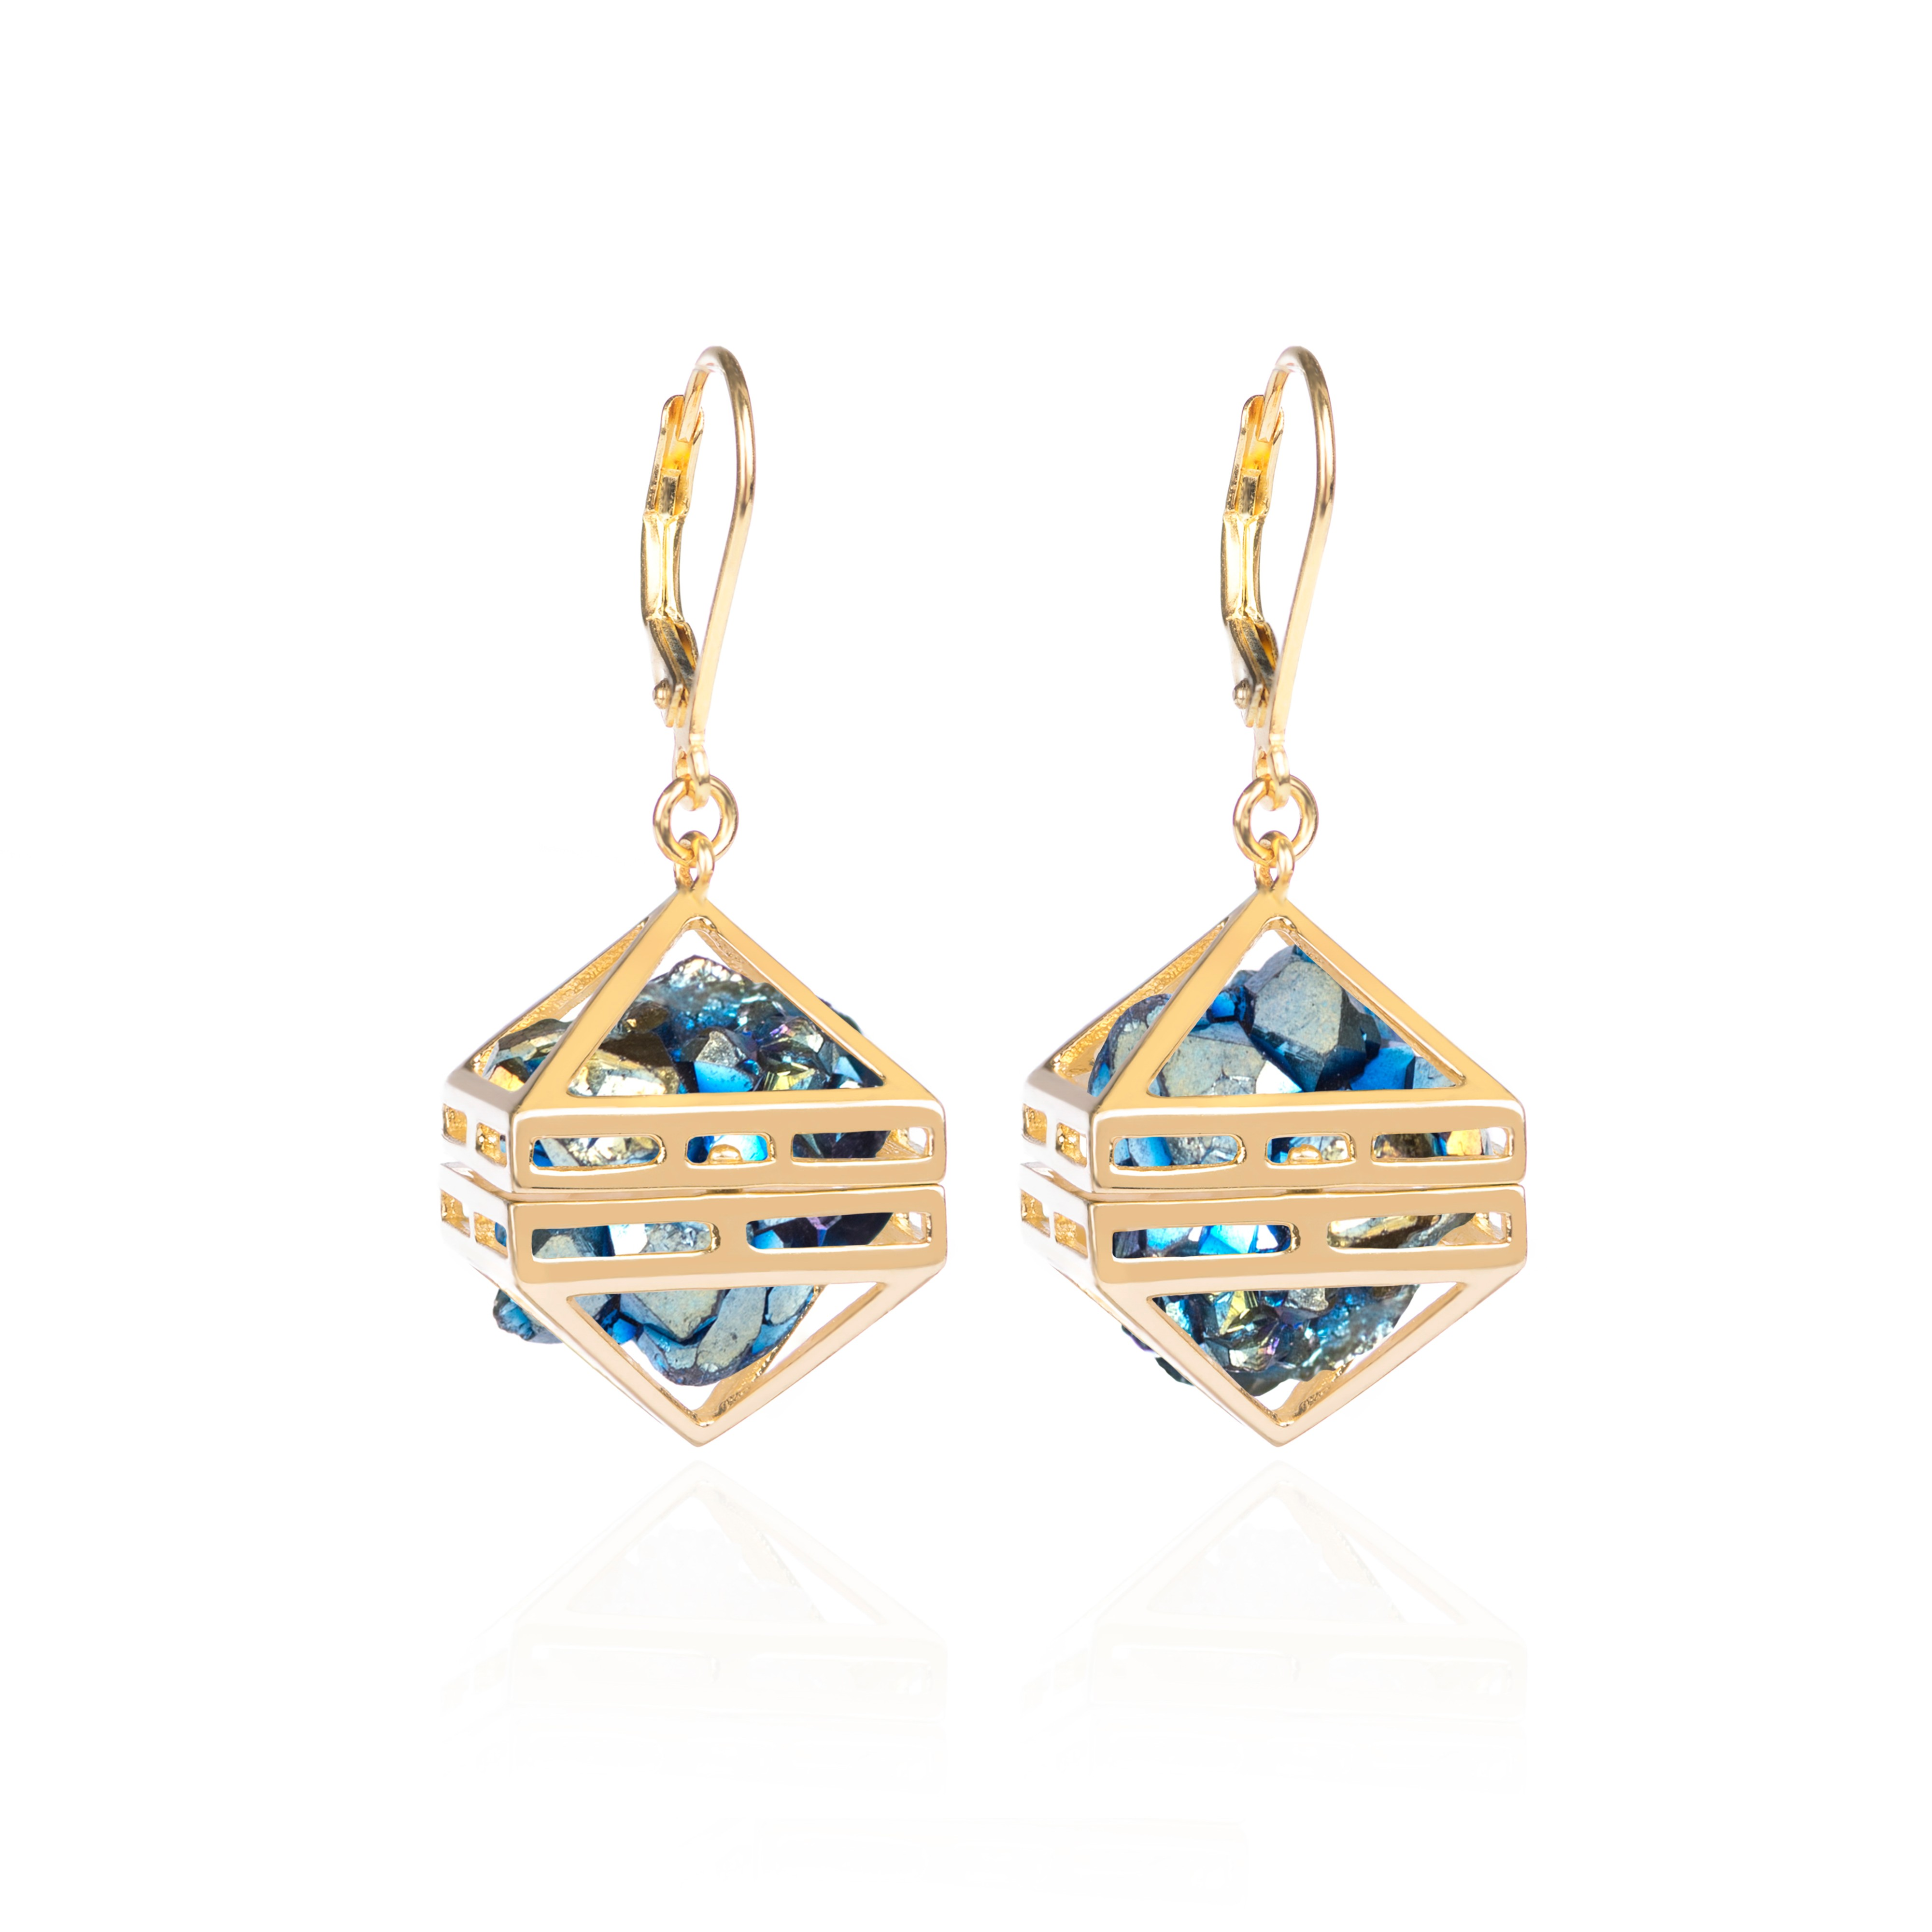 Blue Beauty Within Earrings, Gold by Sally Lane Jewellery on curated-crowd.com